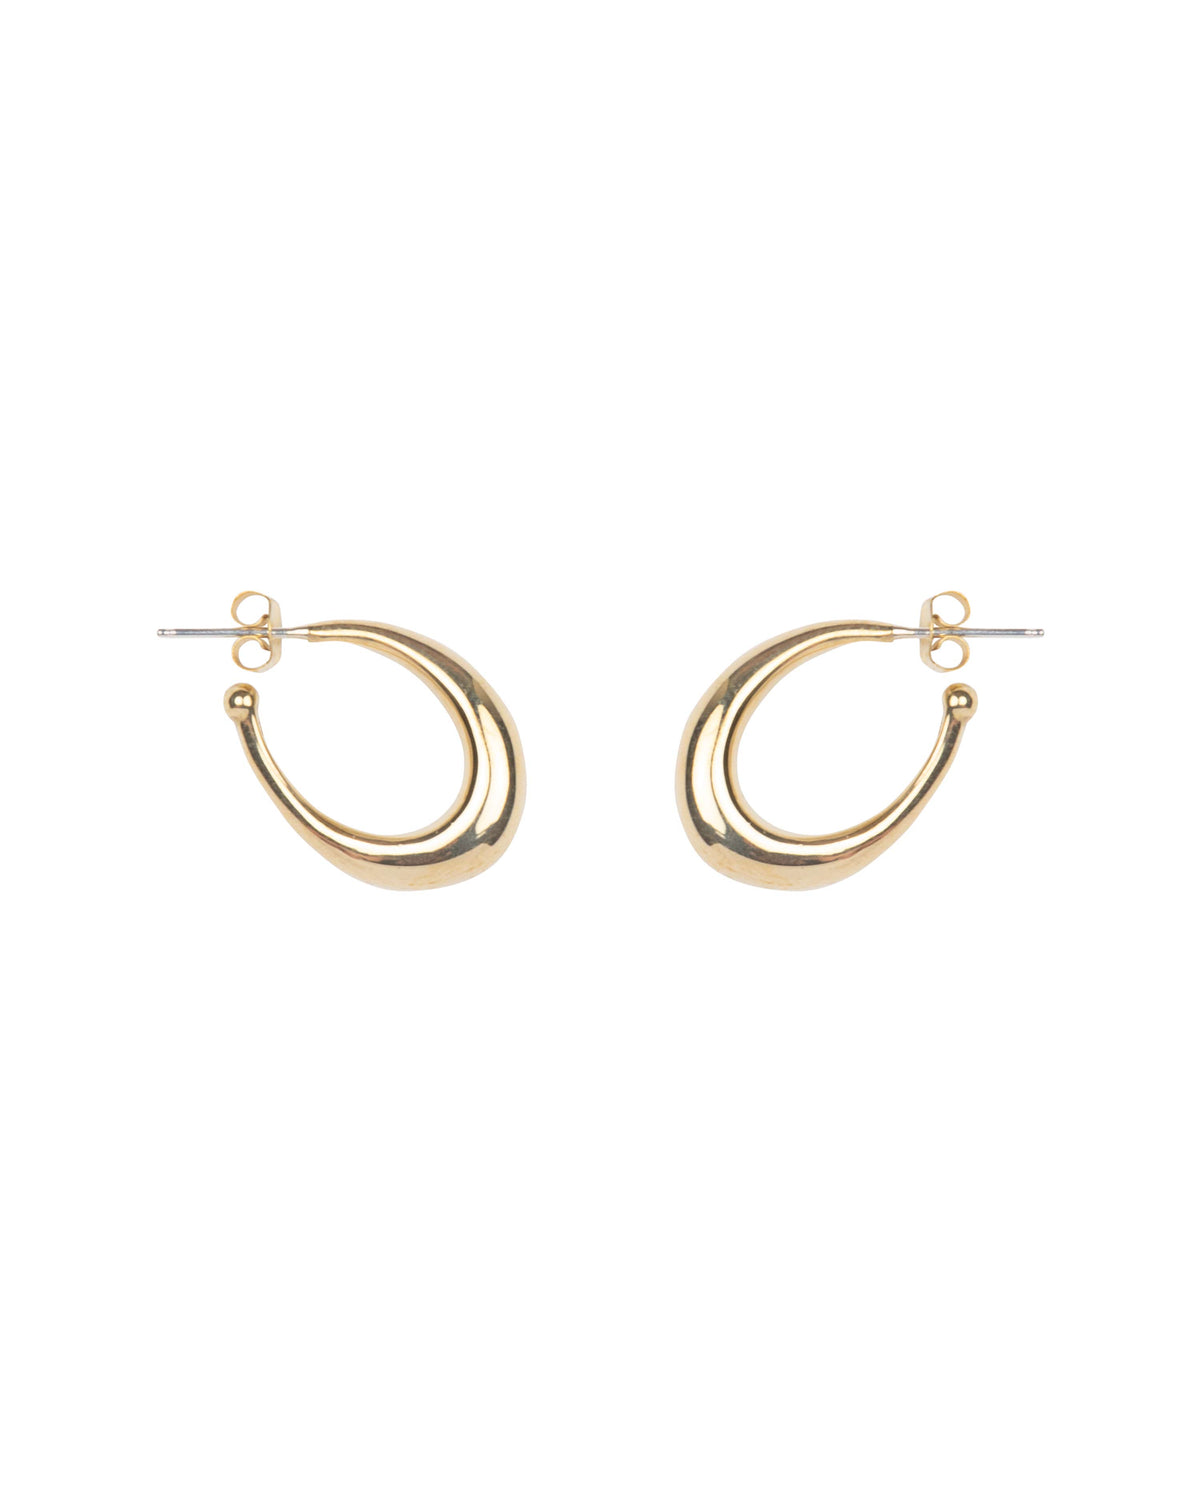 THICK OVAL HOOPS